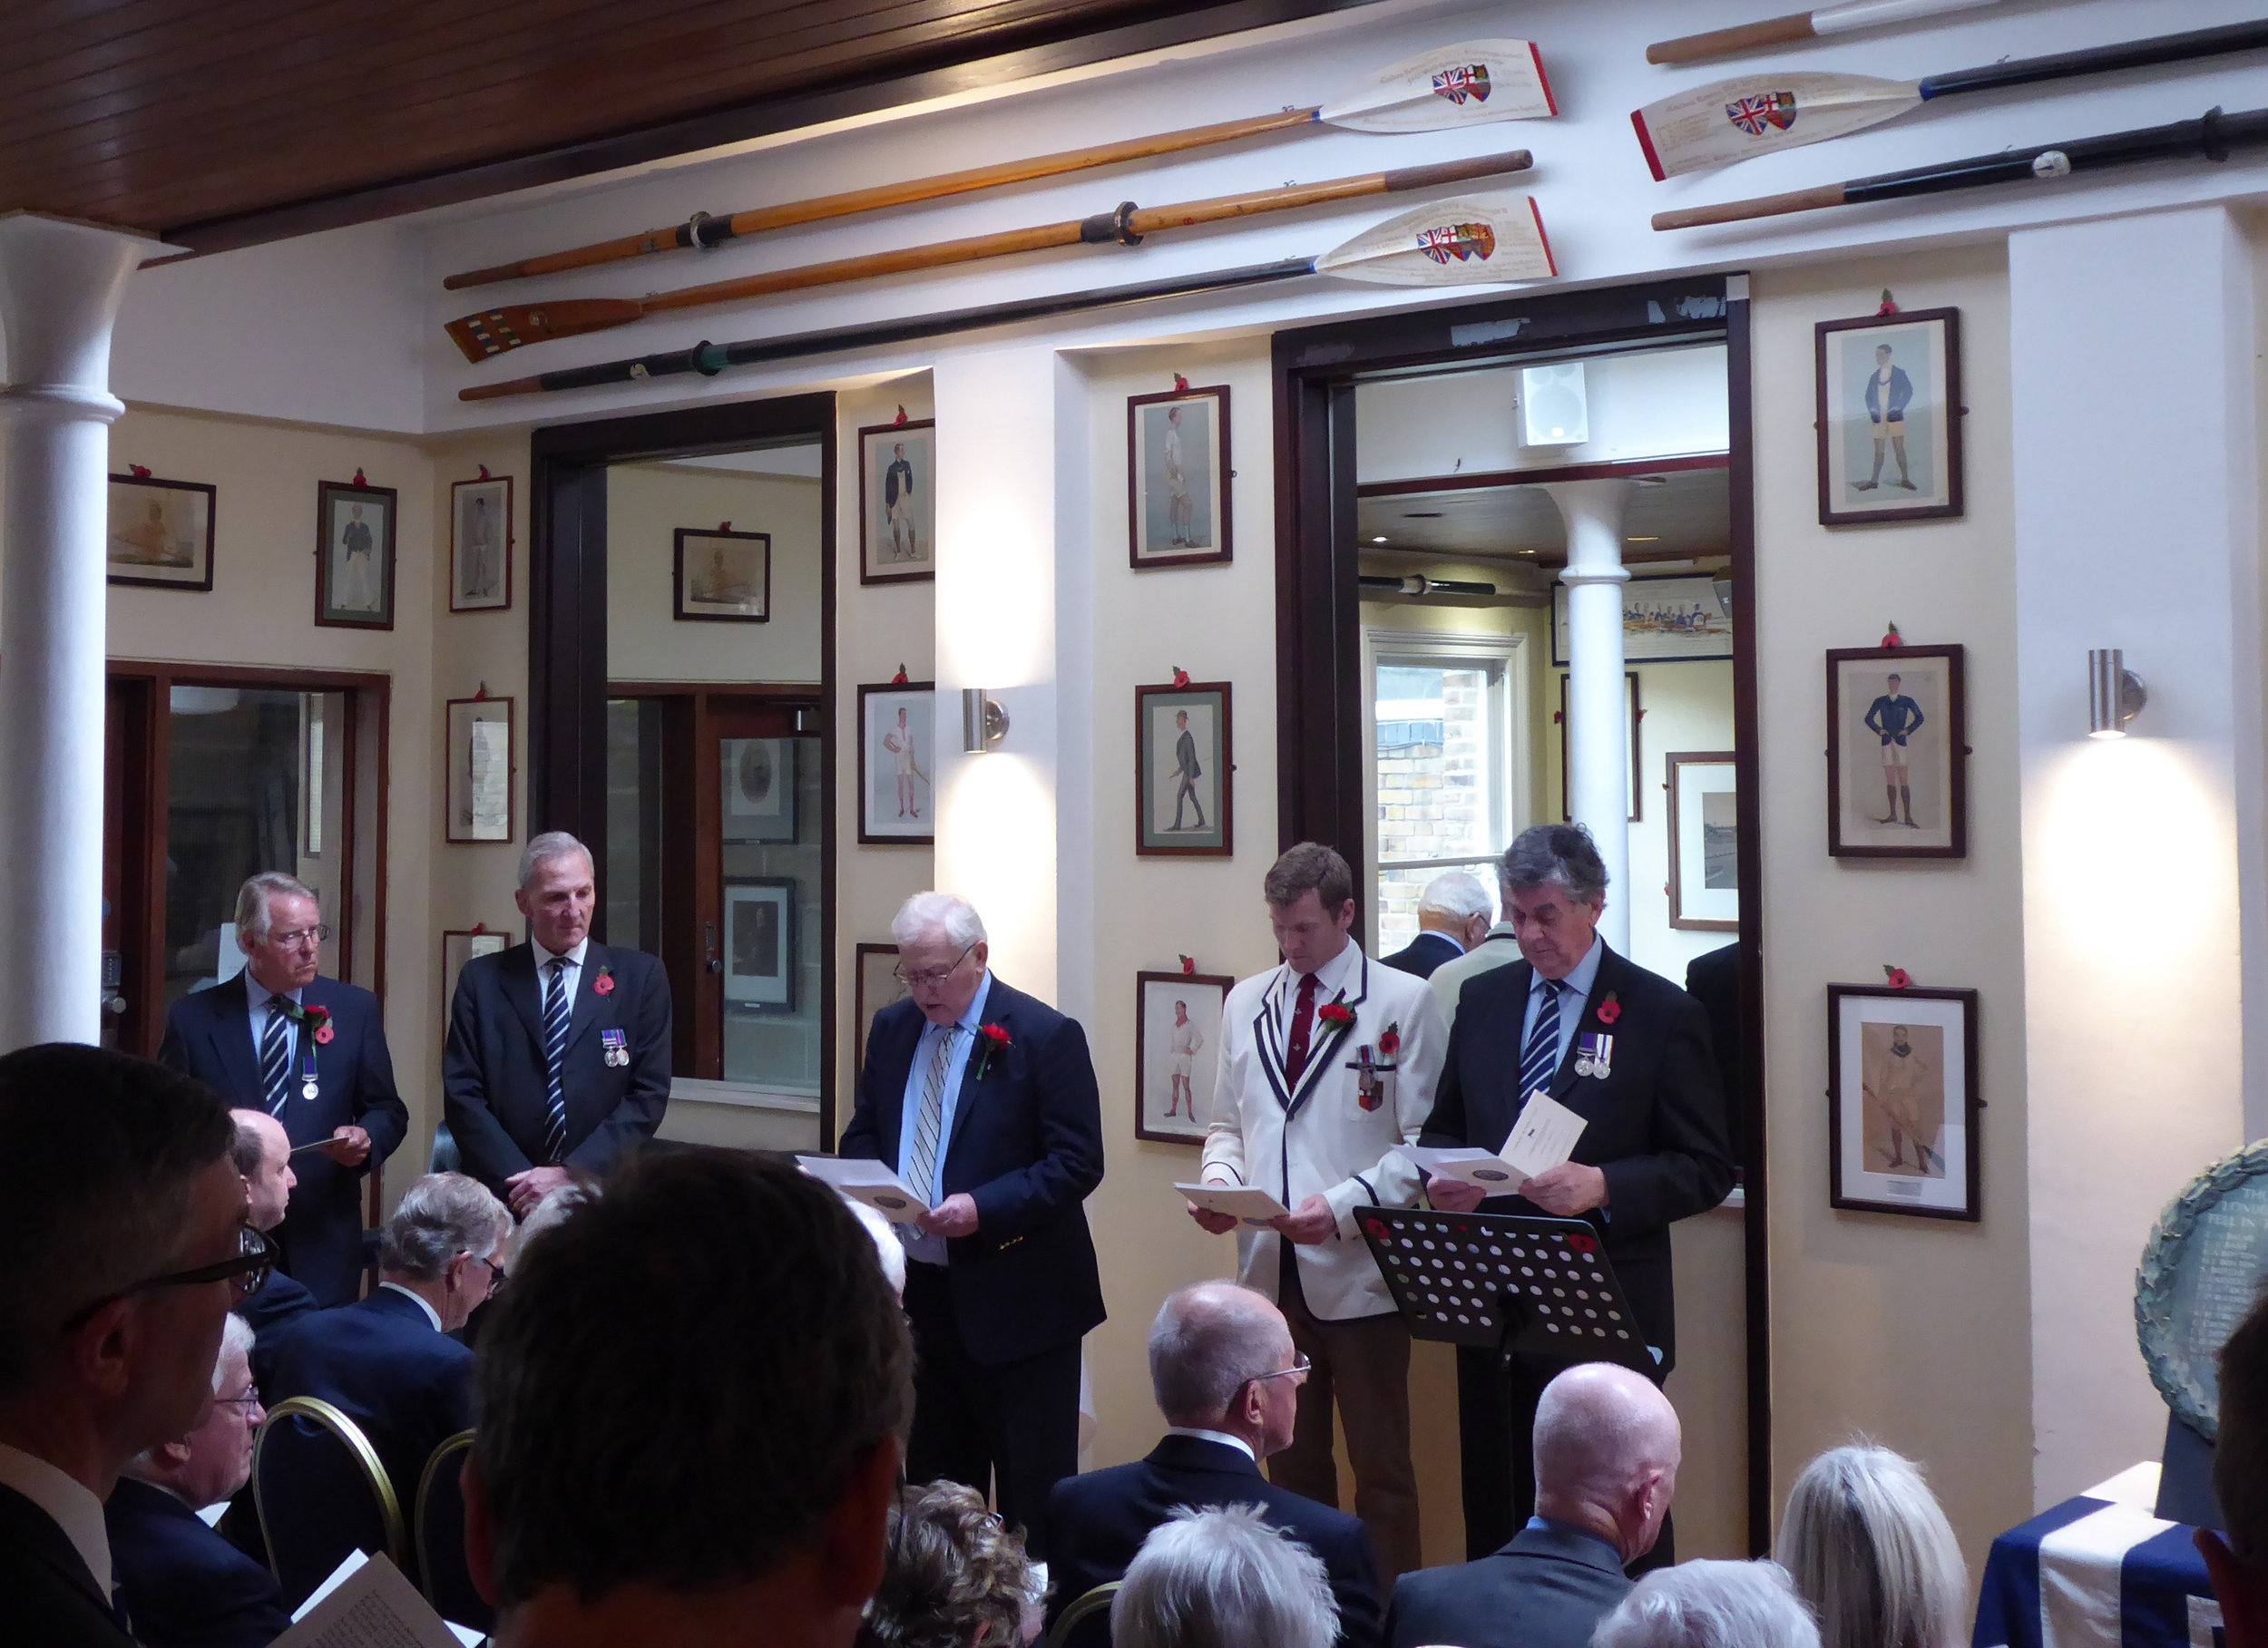 Readers of the names of the 50 fallen (L to R) - Robin Cameron Cooper; Alan Foster; Peter Fraser; Tim Grant (Captain); Iain Reid. The re-dedicated war memorial tablet is on the right.